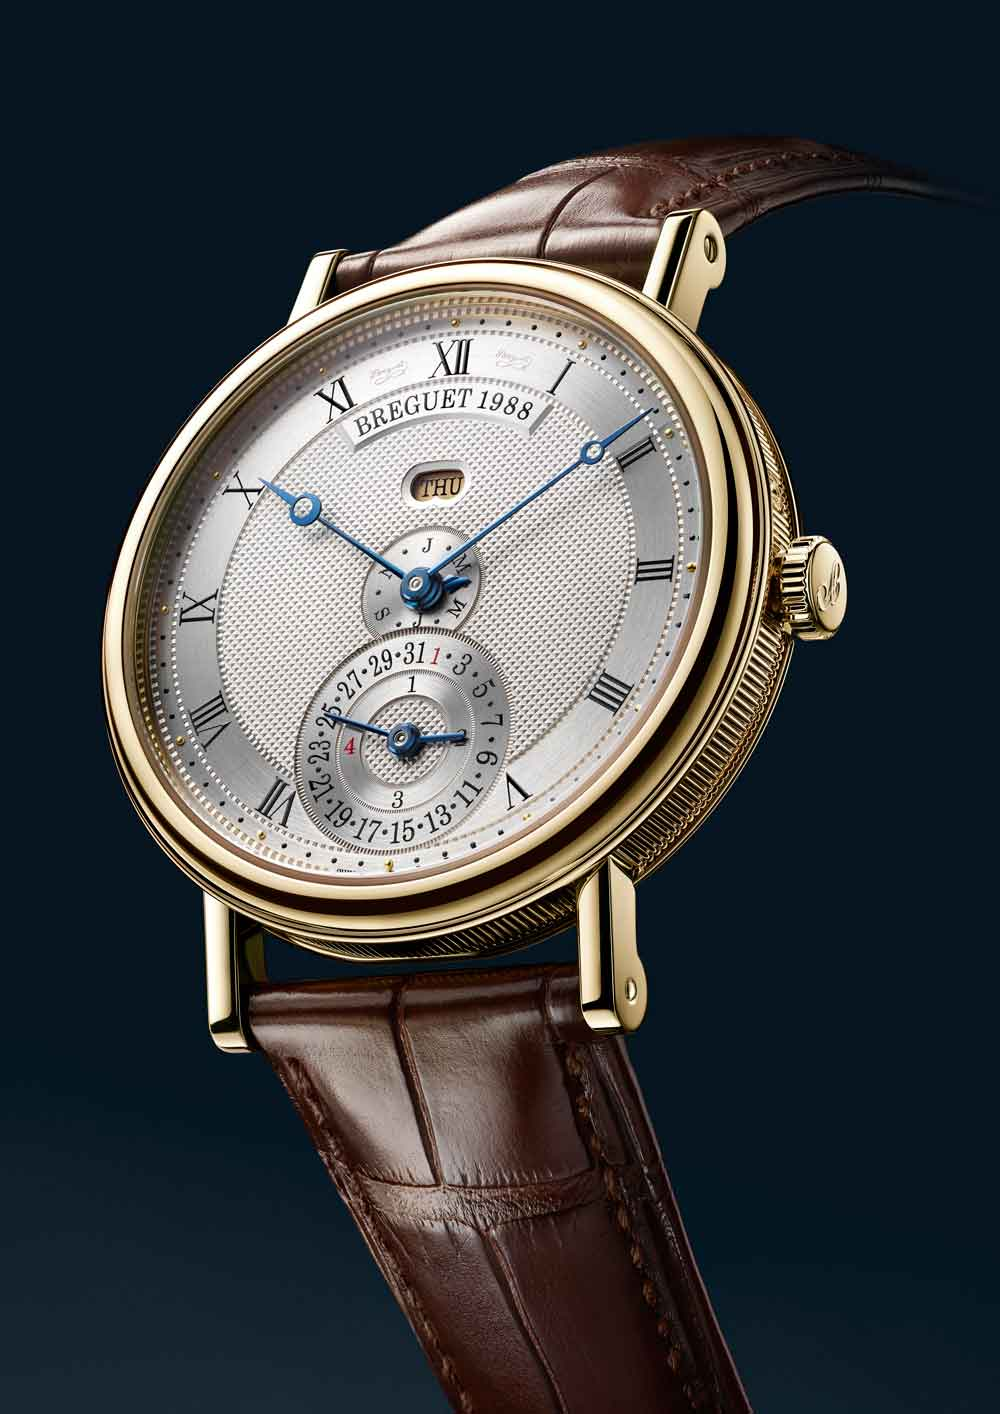 Breguet Classic calendario perpetuo lineal only Watch